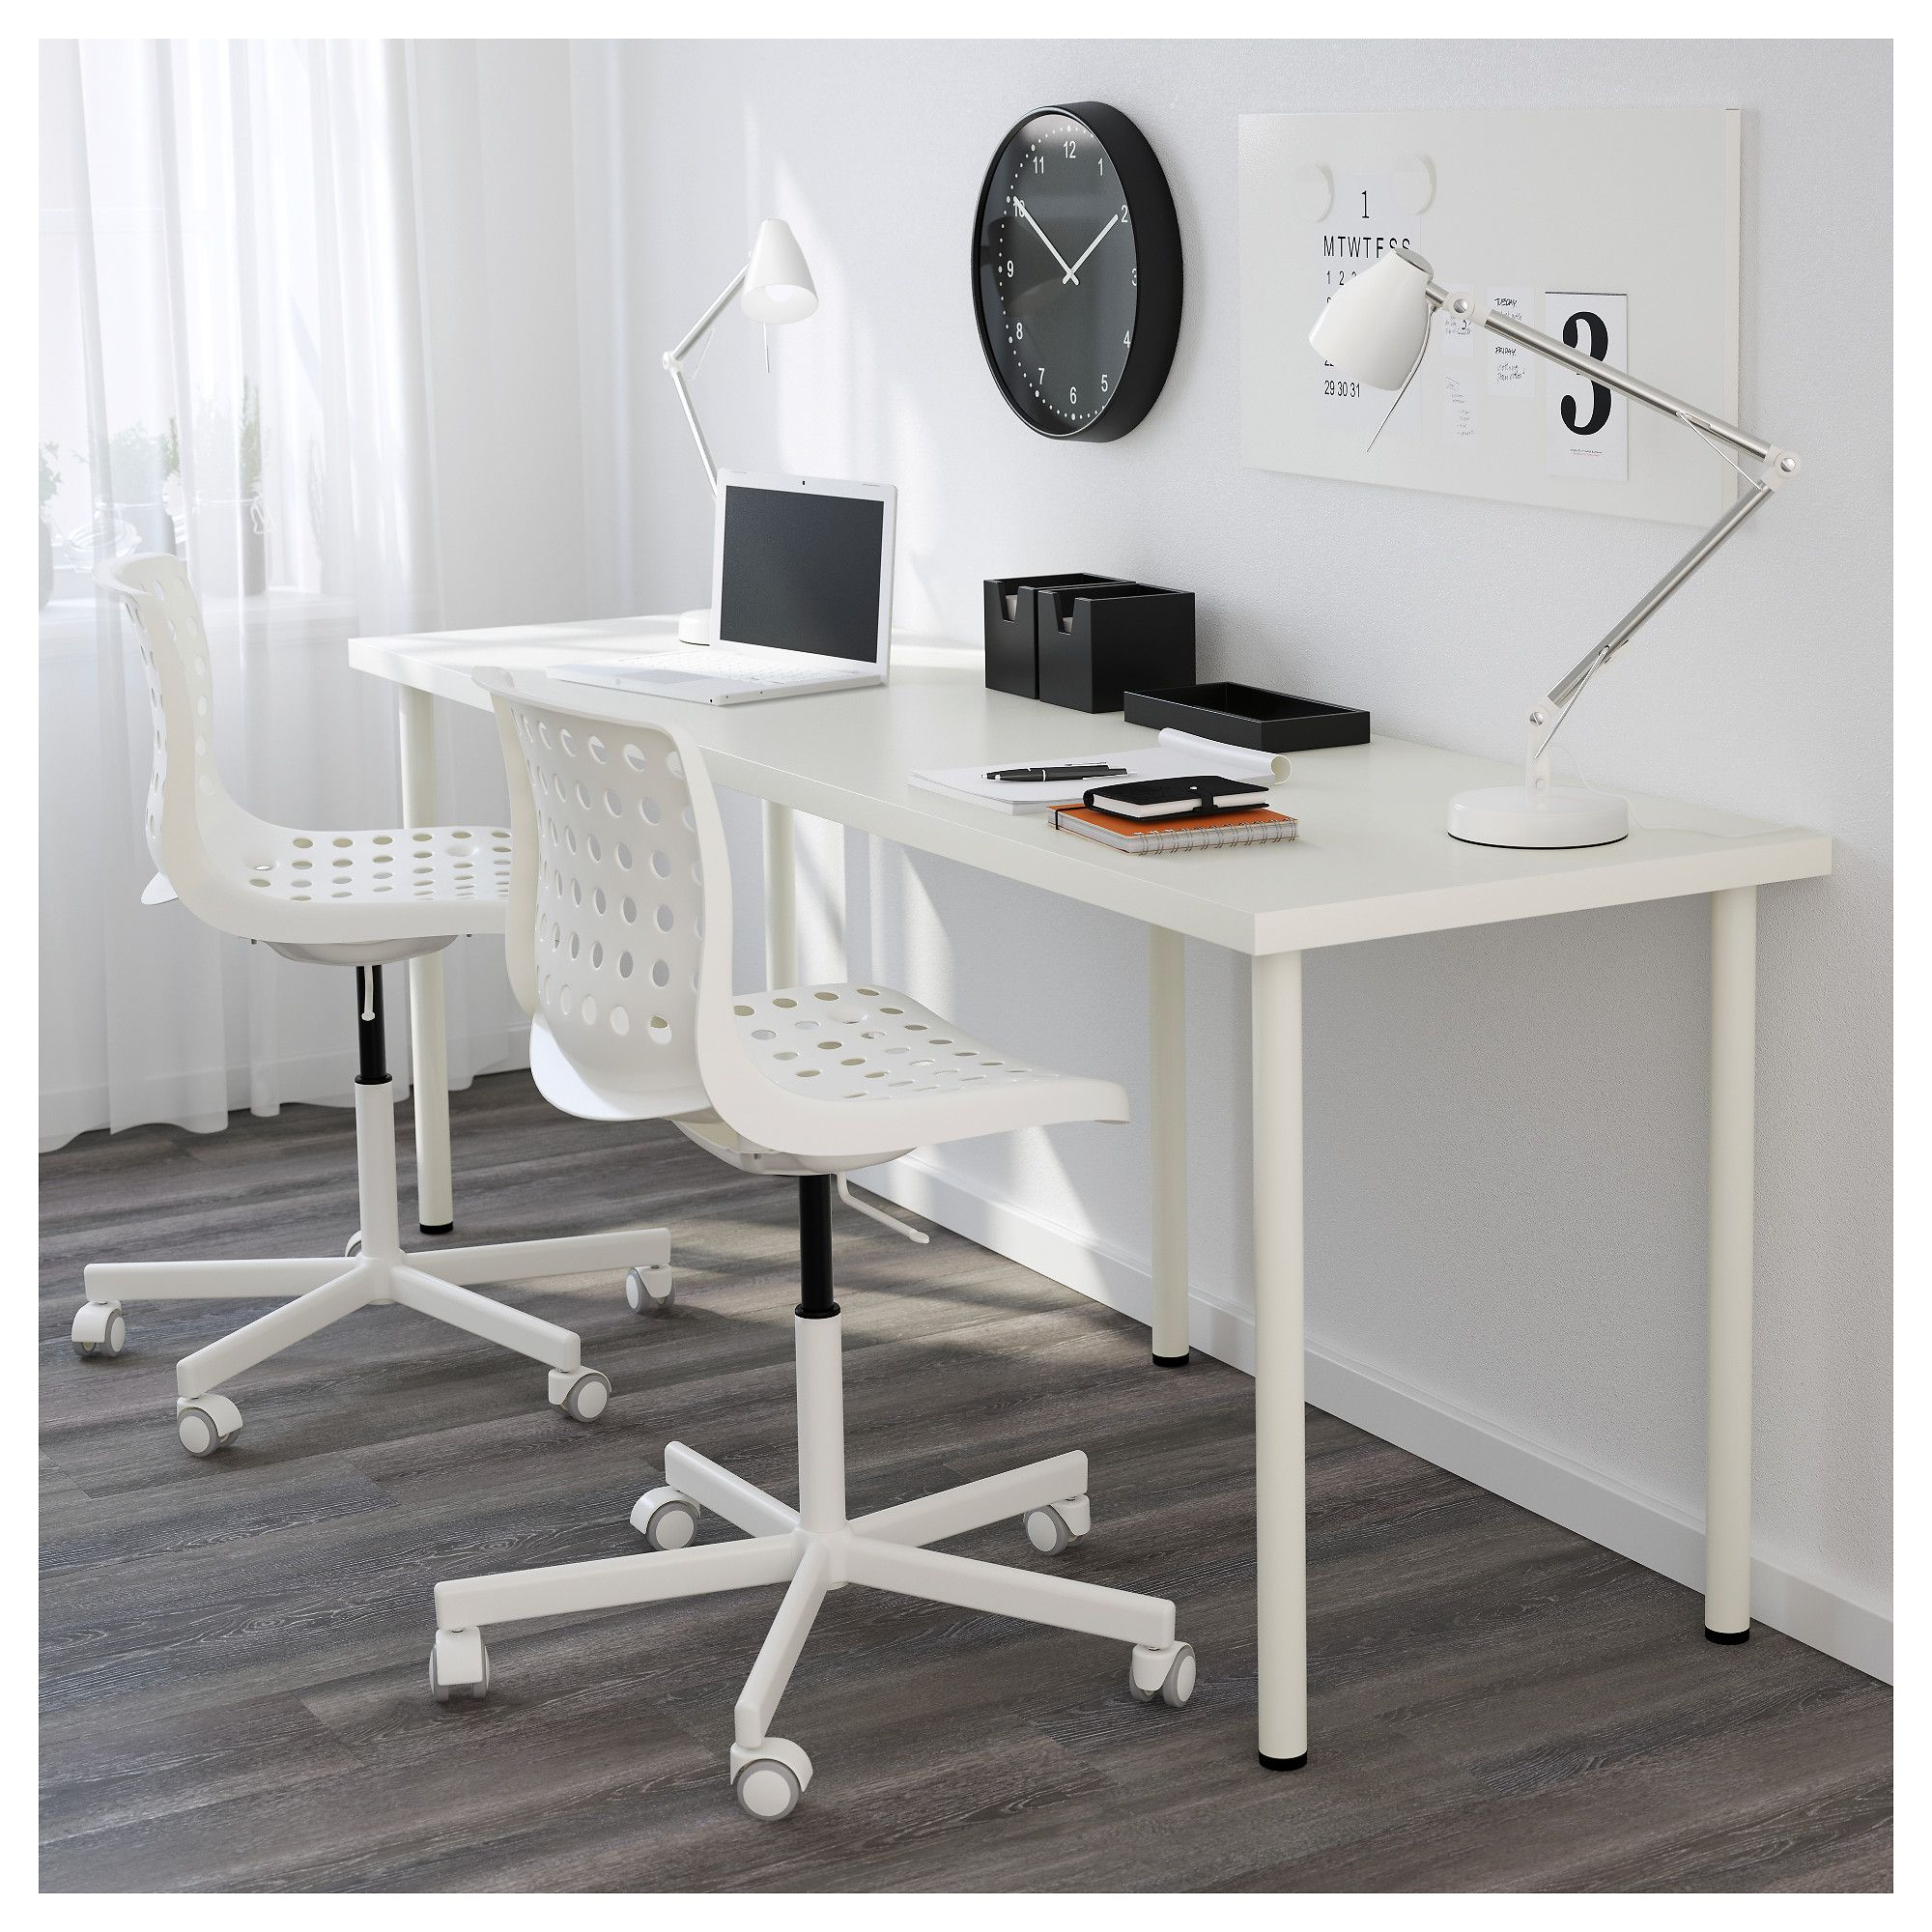 Linnmon Adils White Table 200x60 Cm Ikea Linnmon Table Top Ikea Linnmon Desk Home Office Furniture